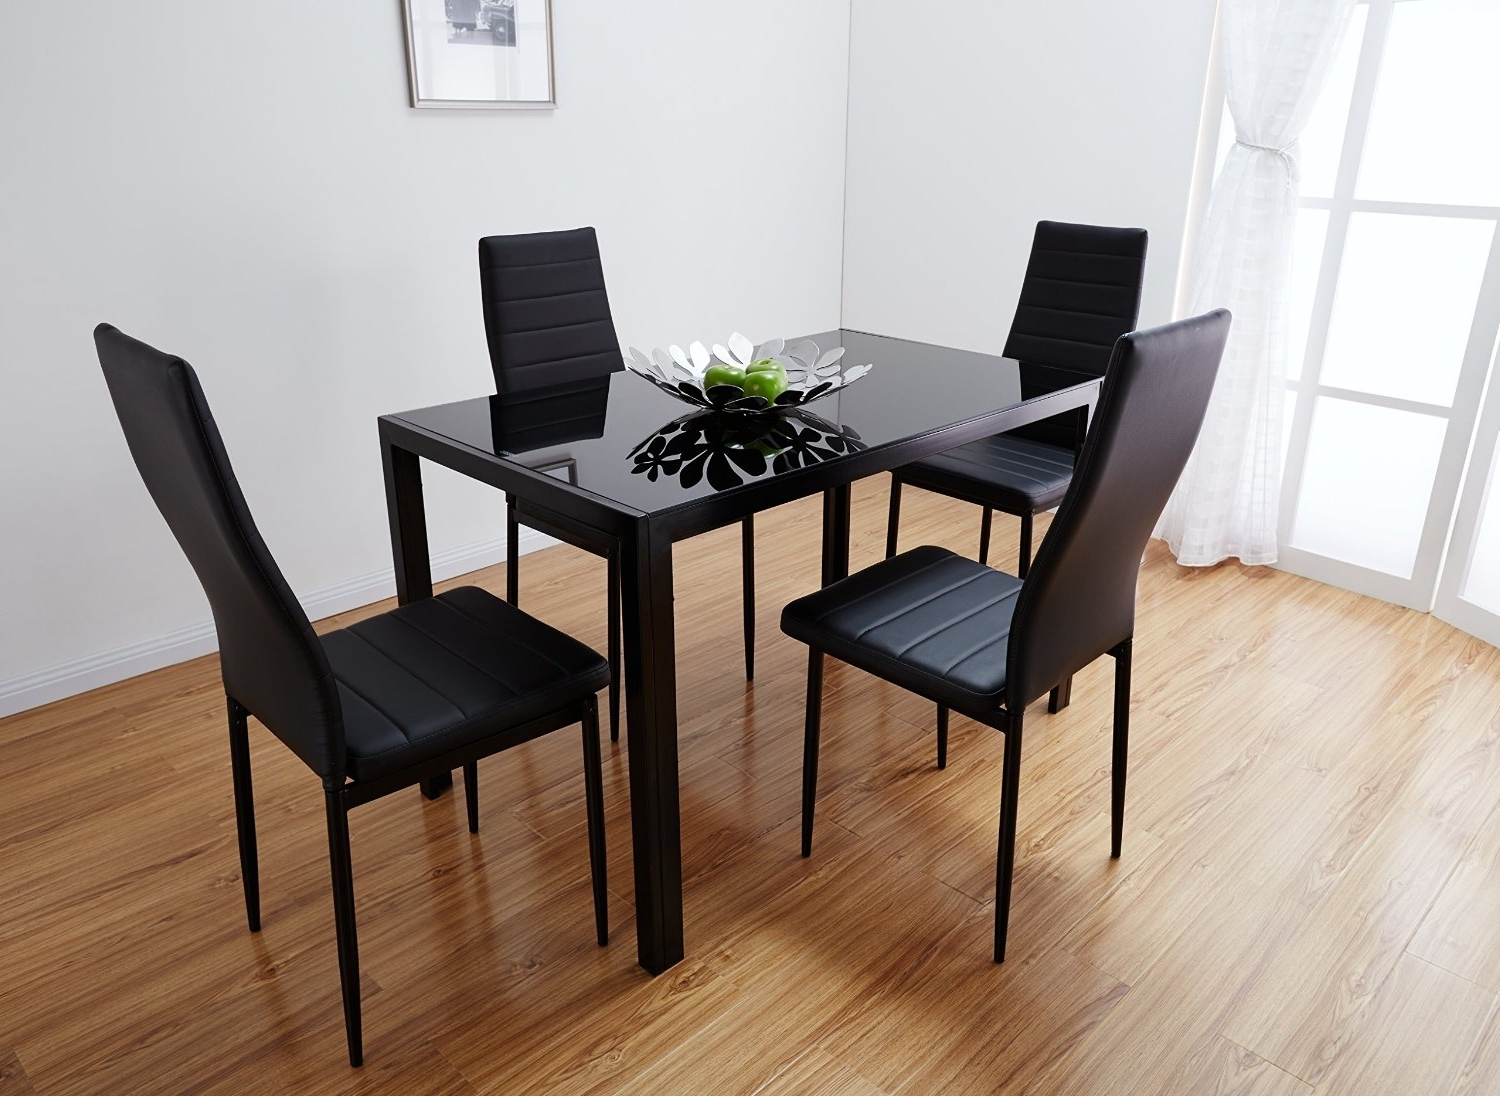 Preferred Glass Top Oak Dining Tables For Dining Room Contemporary Glass Top Dining Table Oak Dining Room (Gallery 21 of 25)